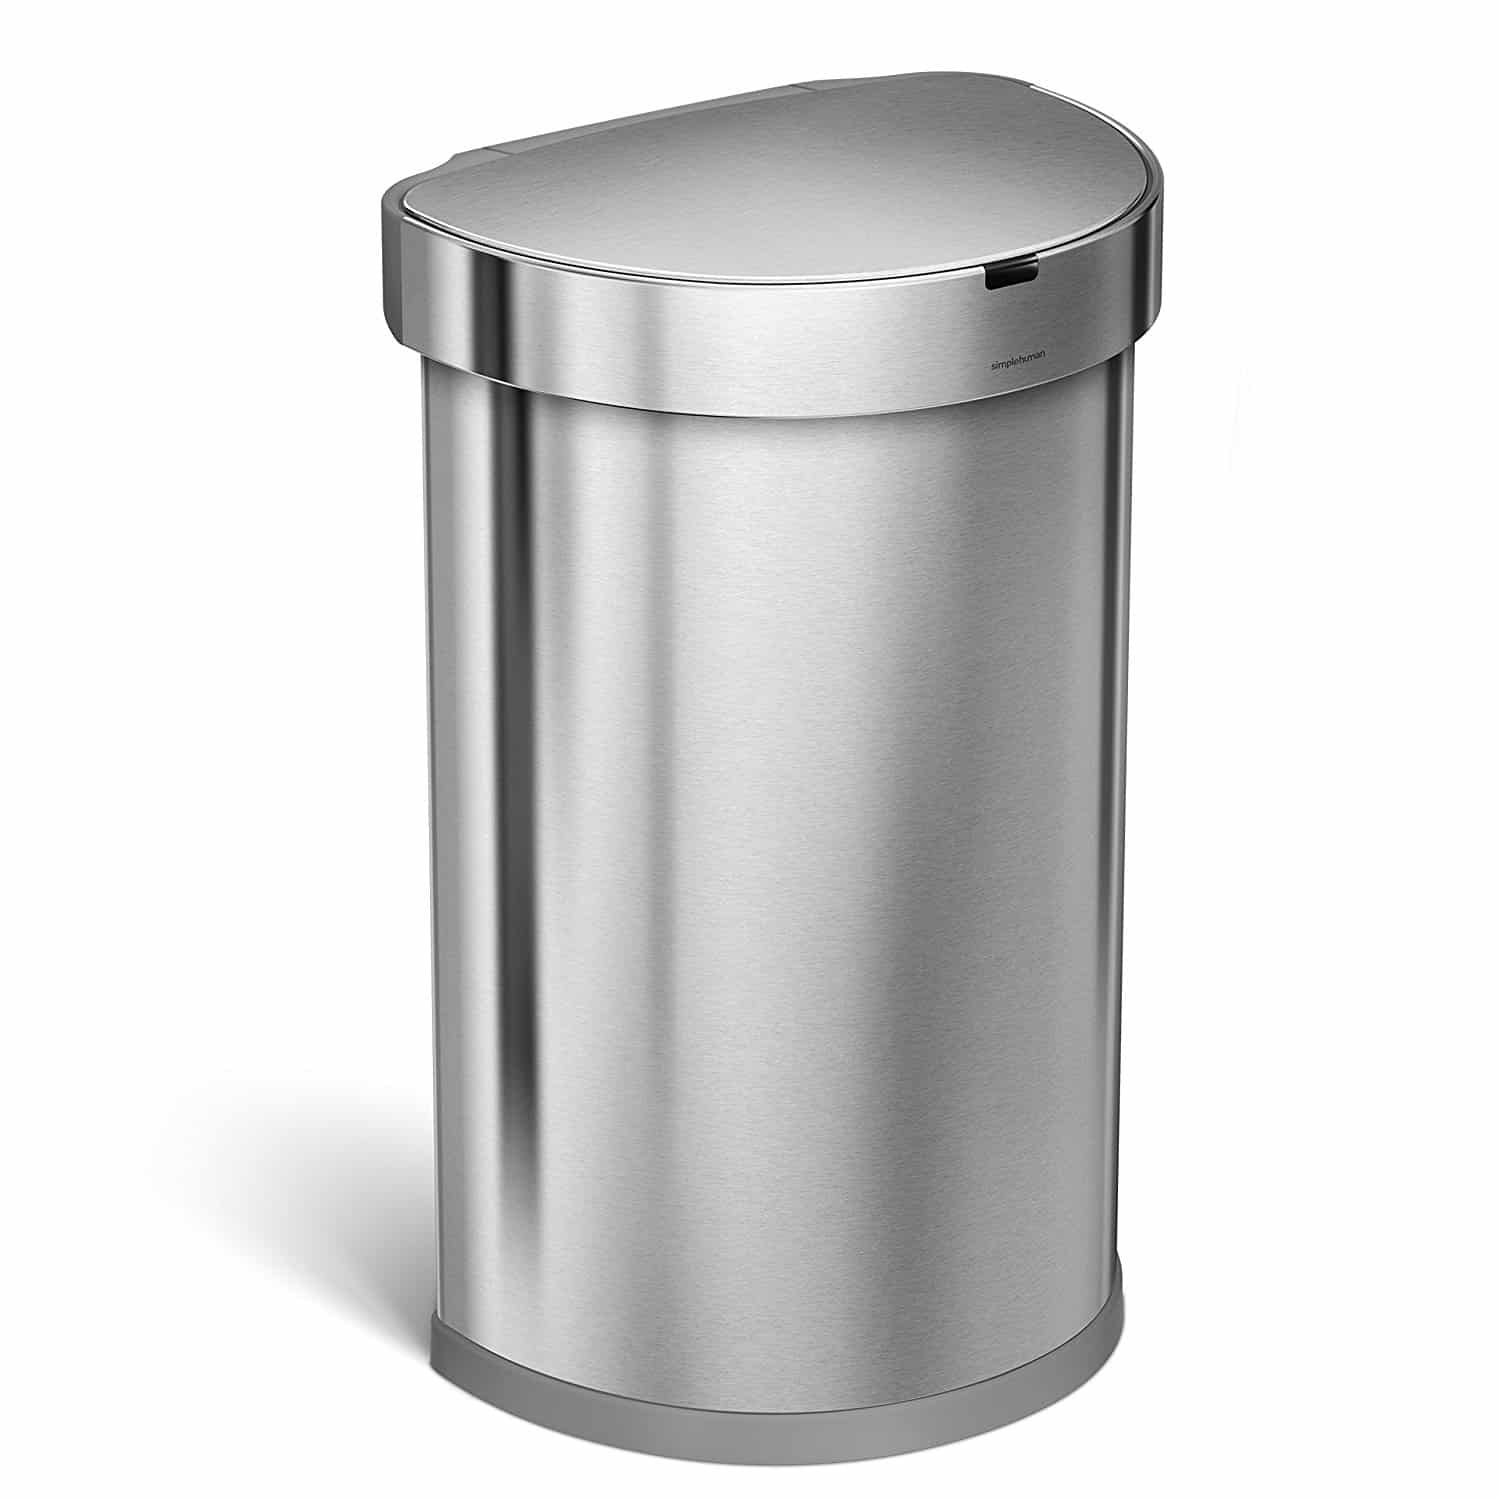 5 best sensor trash cans reviews in